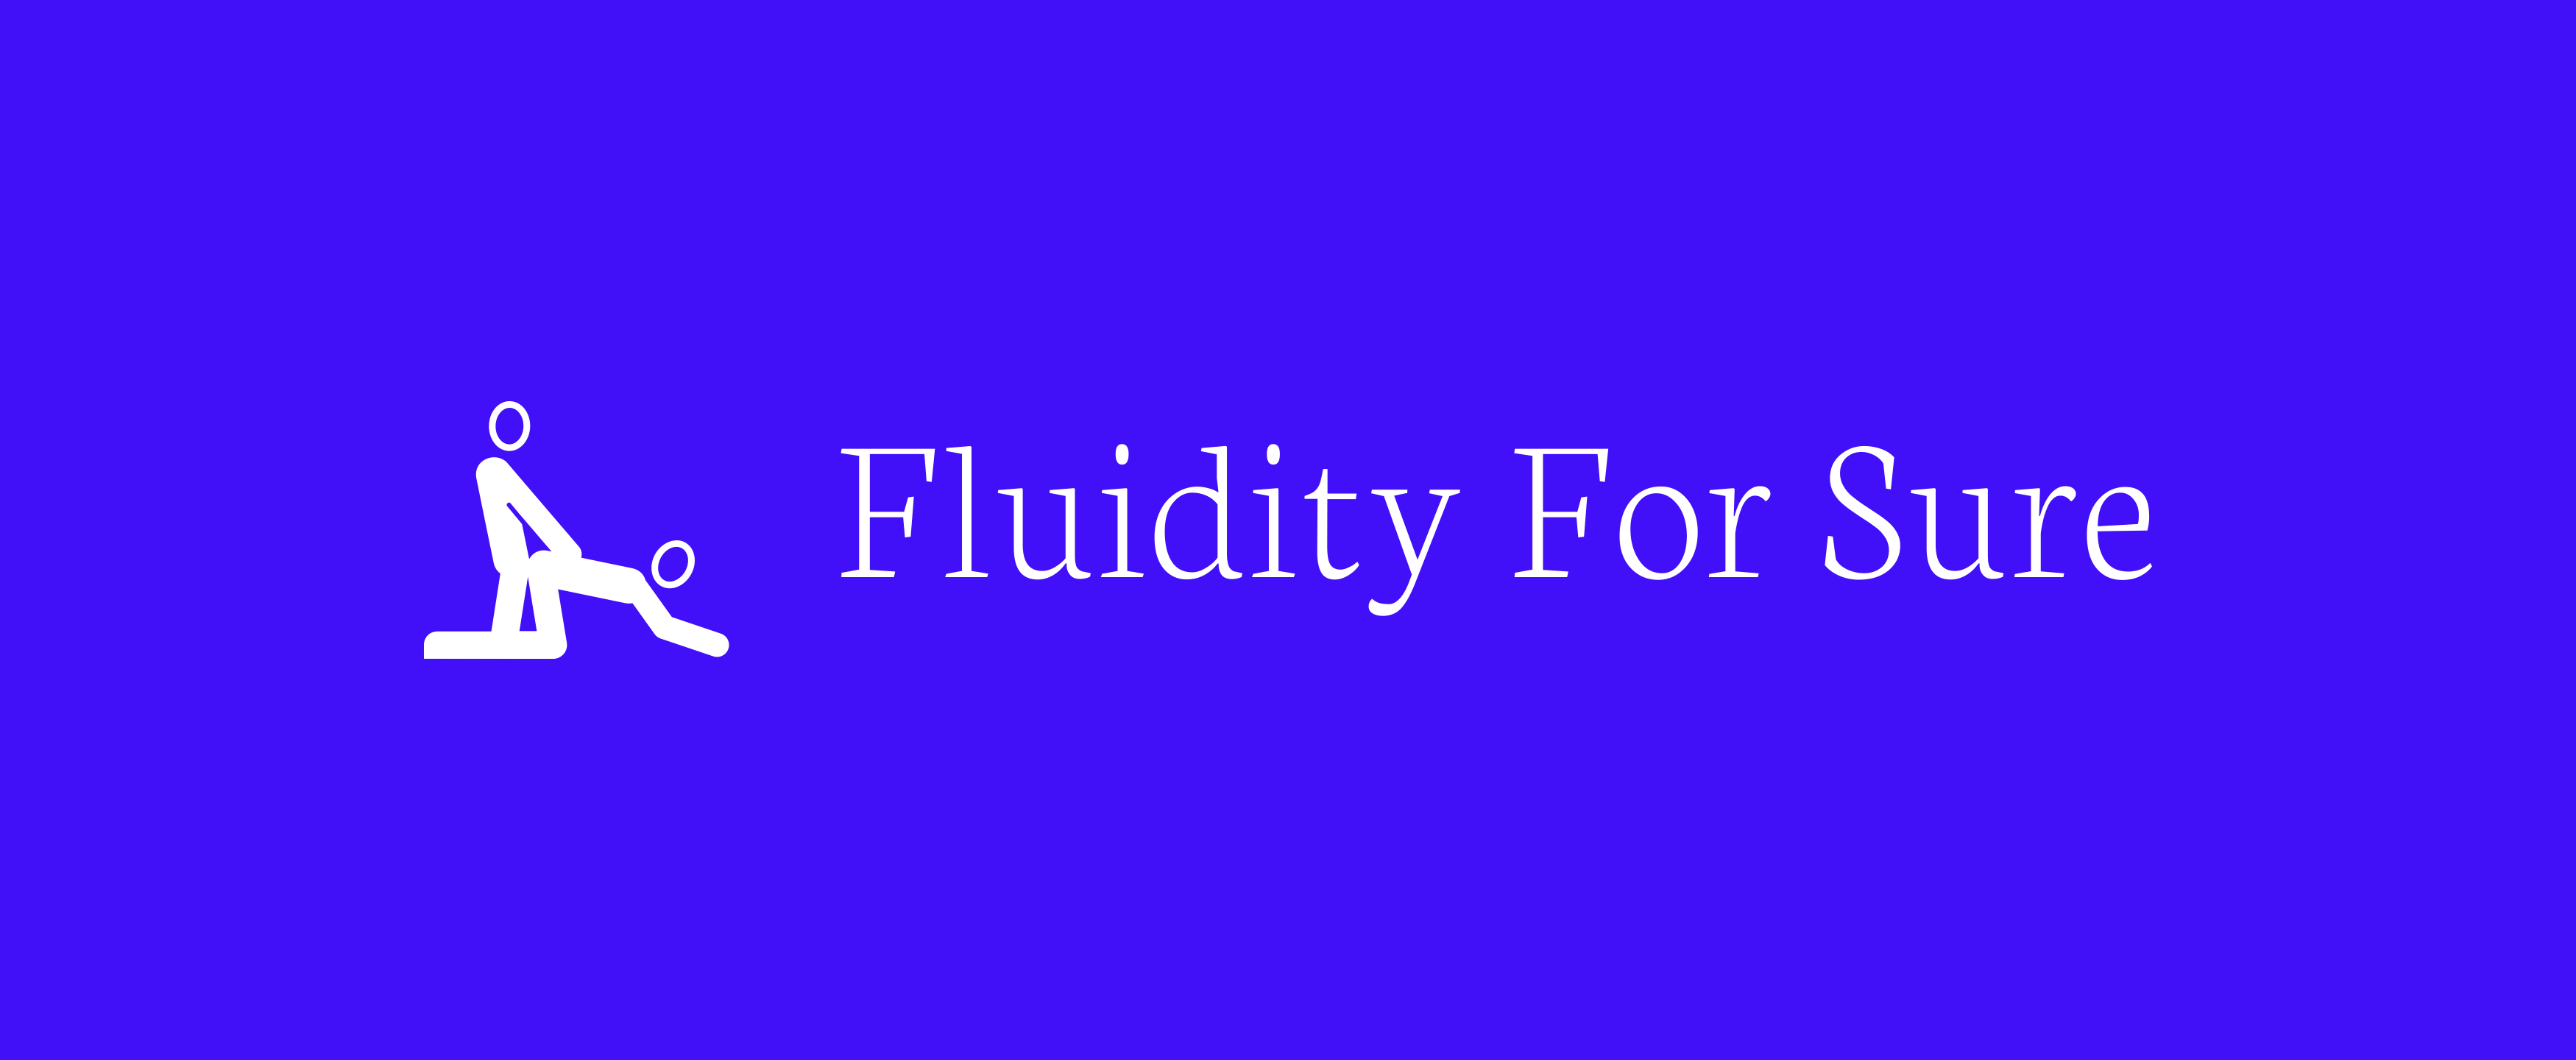 Fluidity For Sure Online Dating